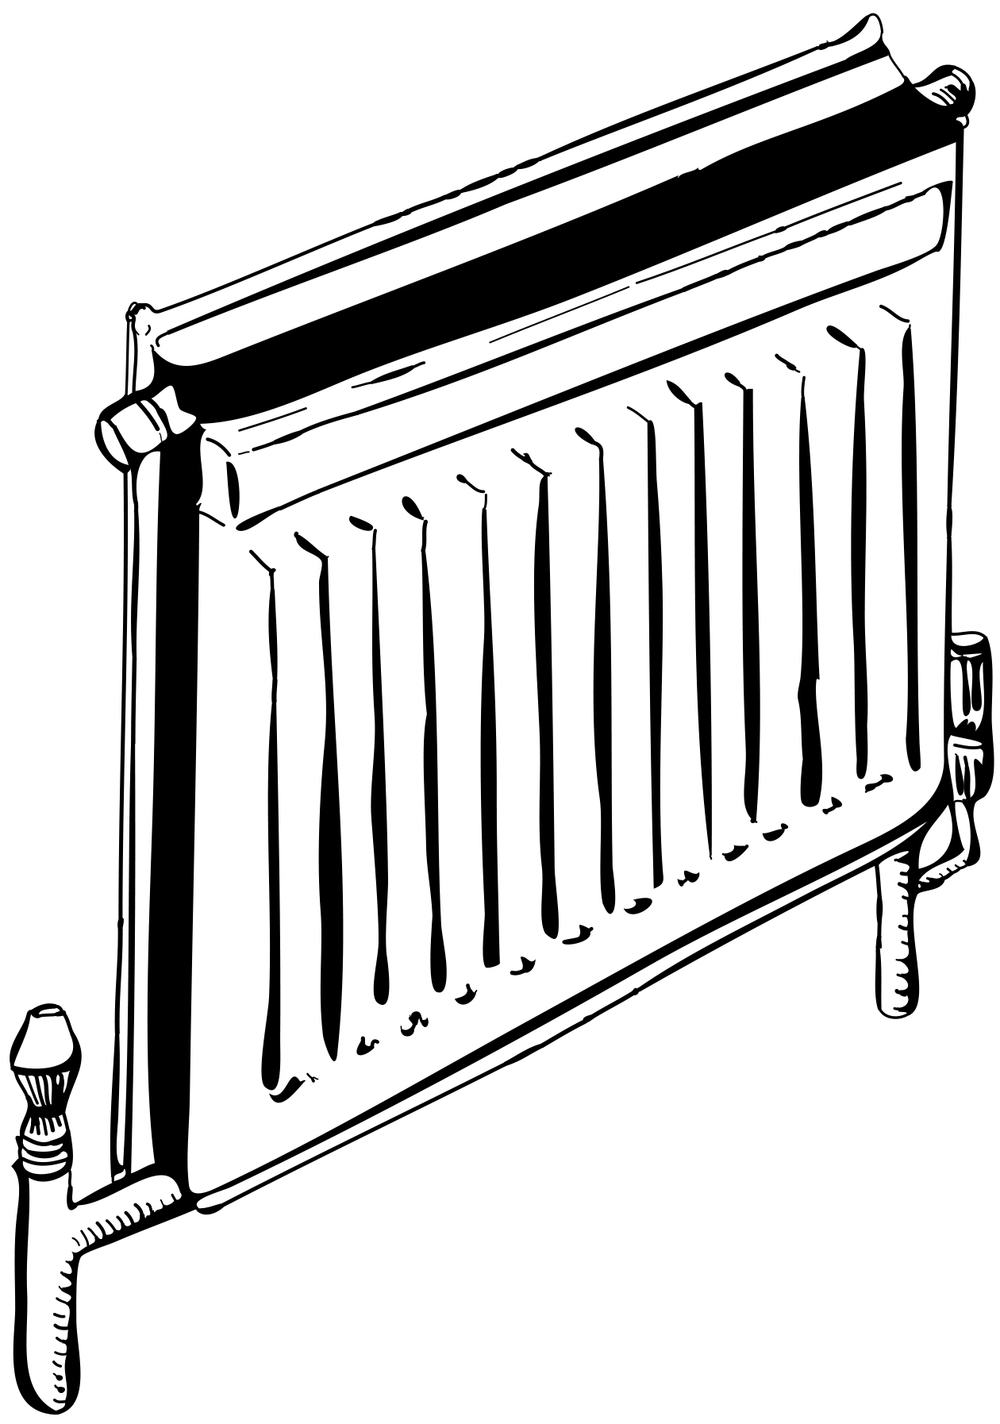 British Institute of Radiology - radiator